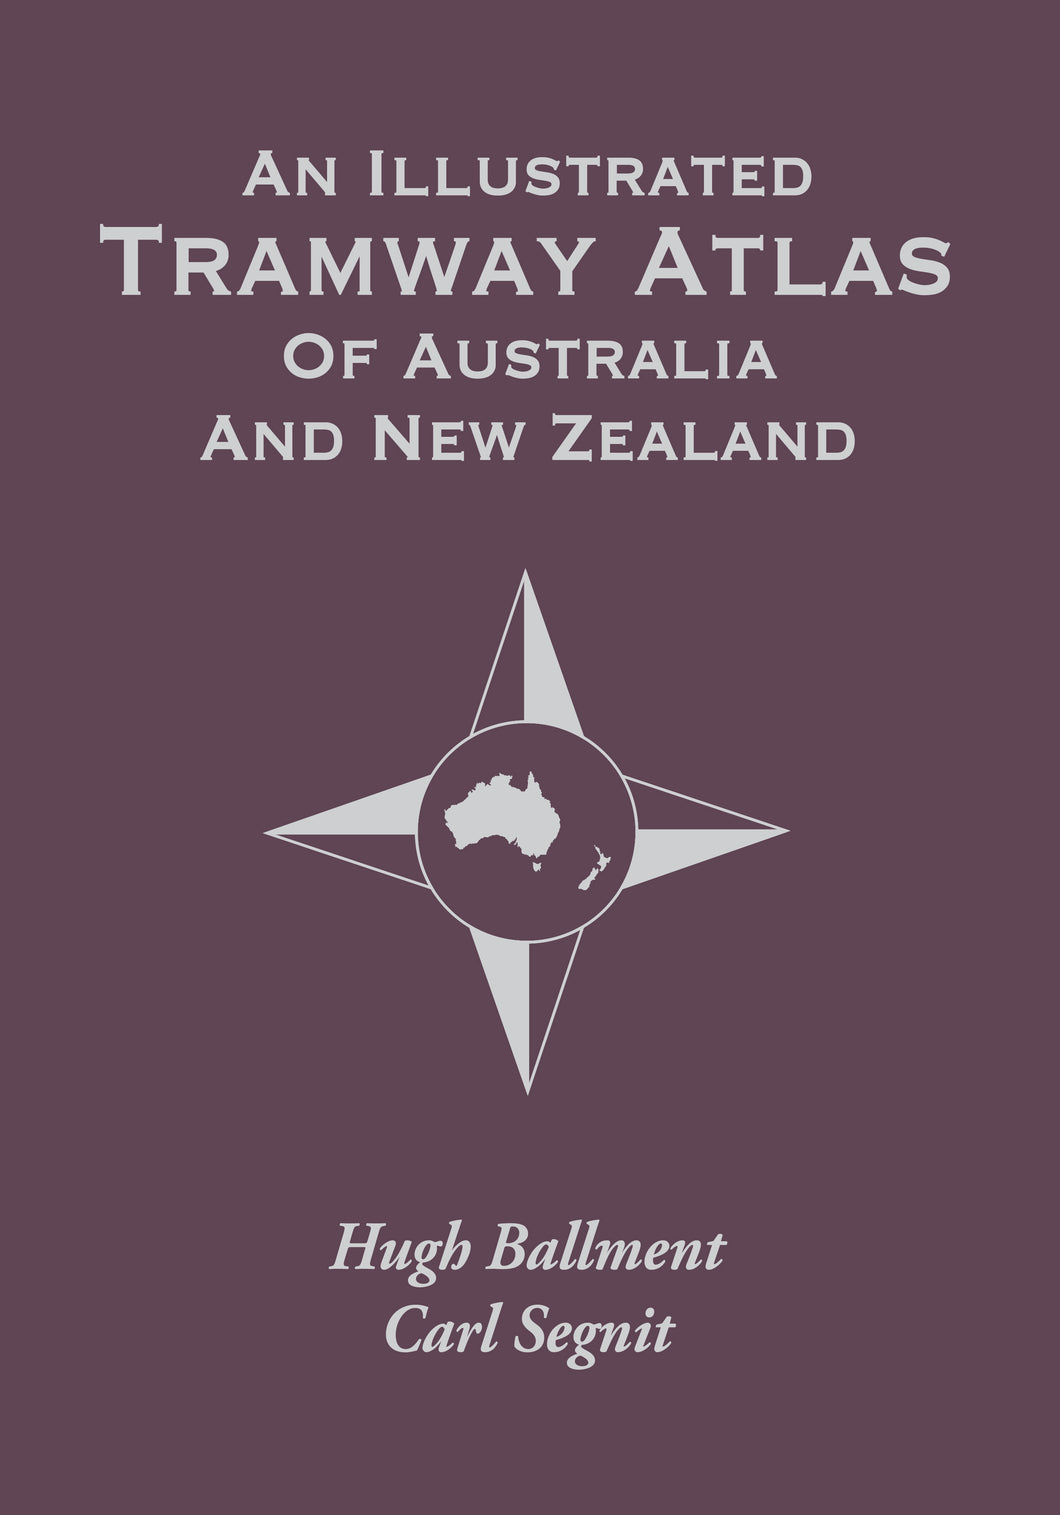 An Illustrated Tramway Atlas Of Australia and New Zealand